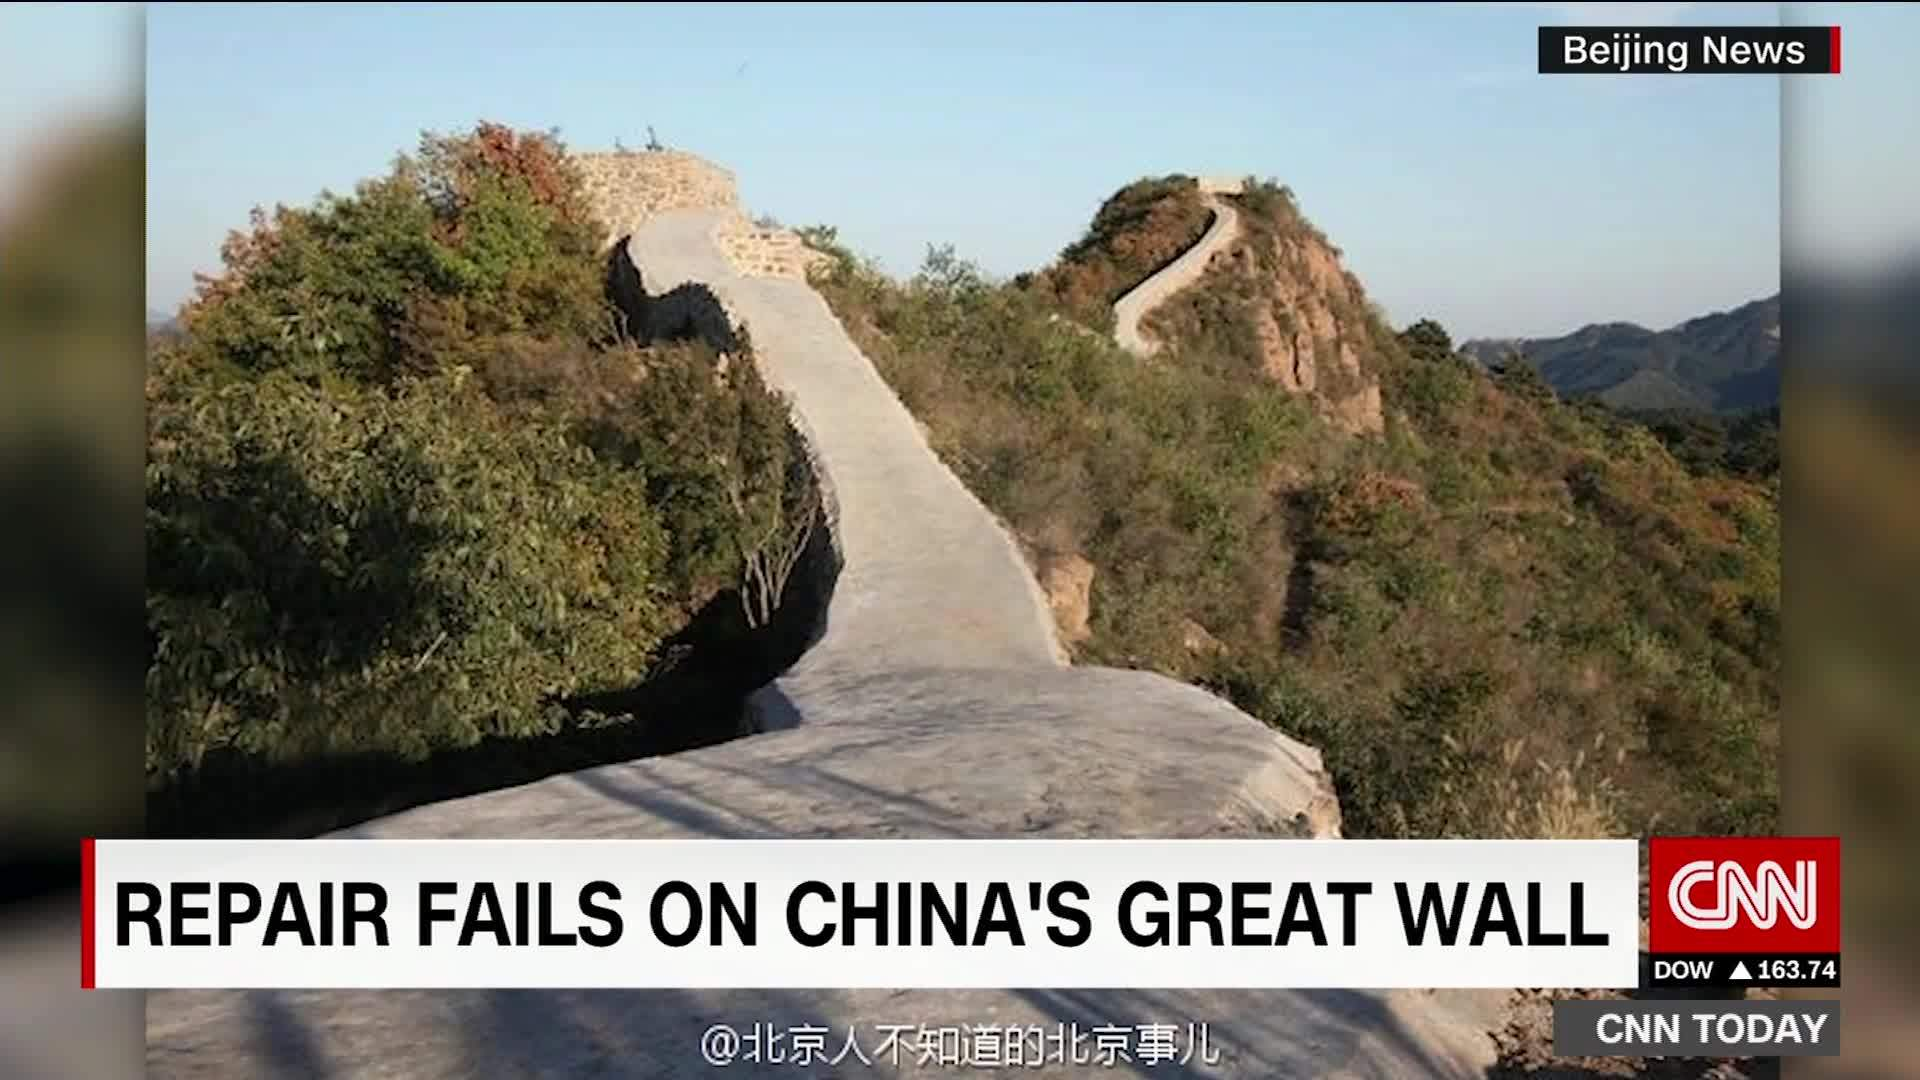 Chinas Great Wall covered in cement CNN Travel 1920x1080